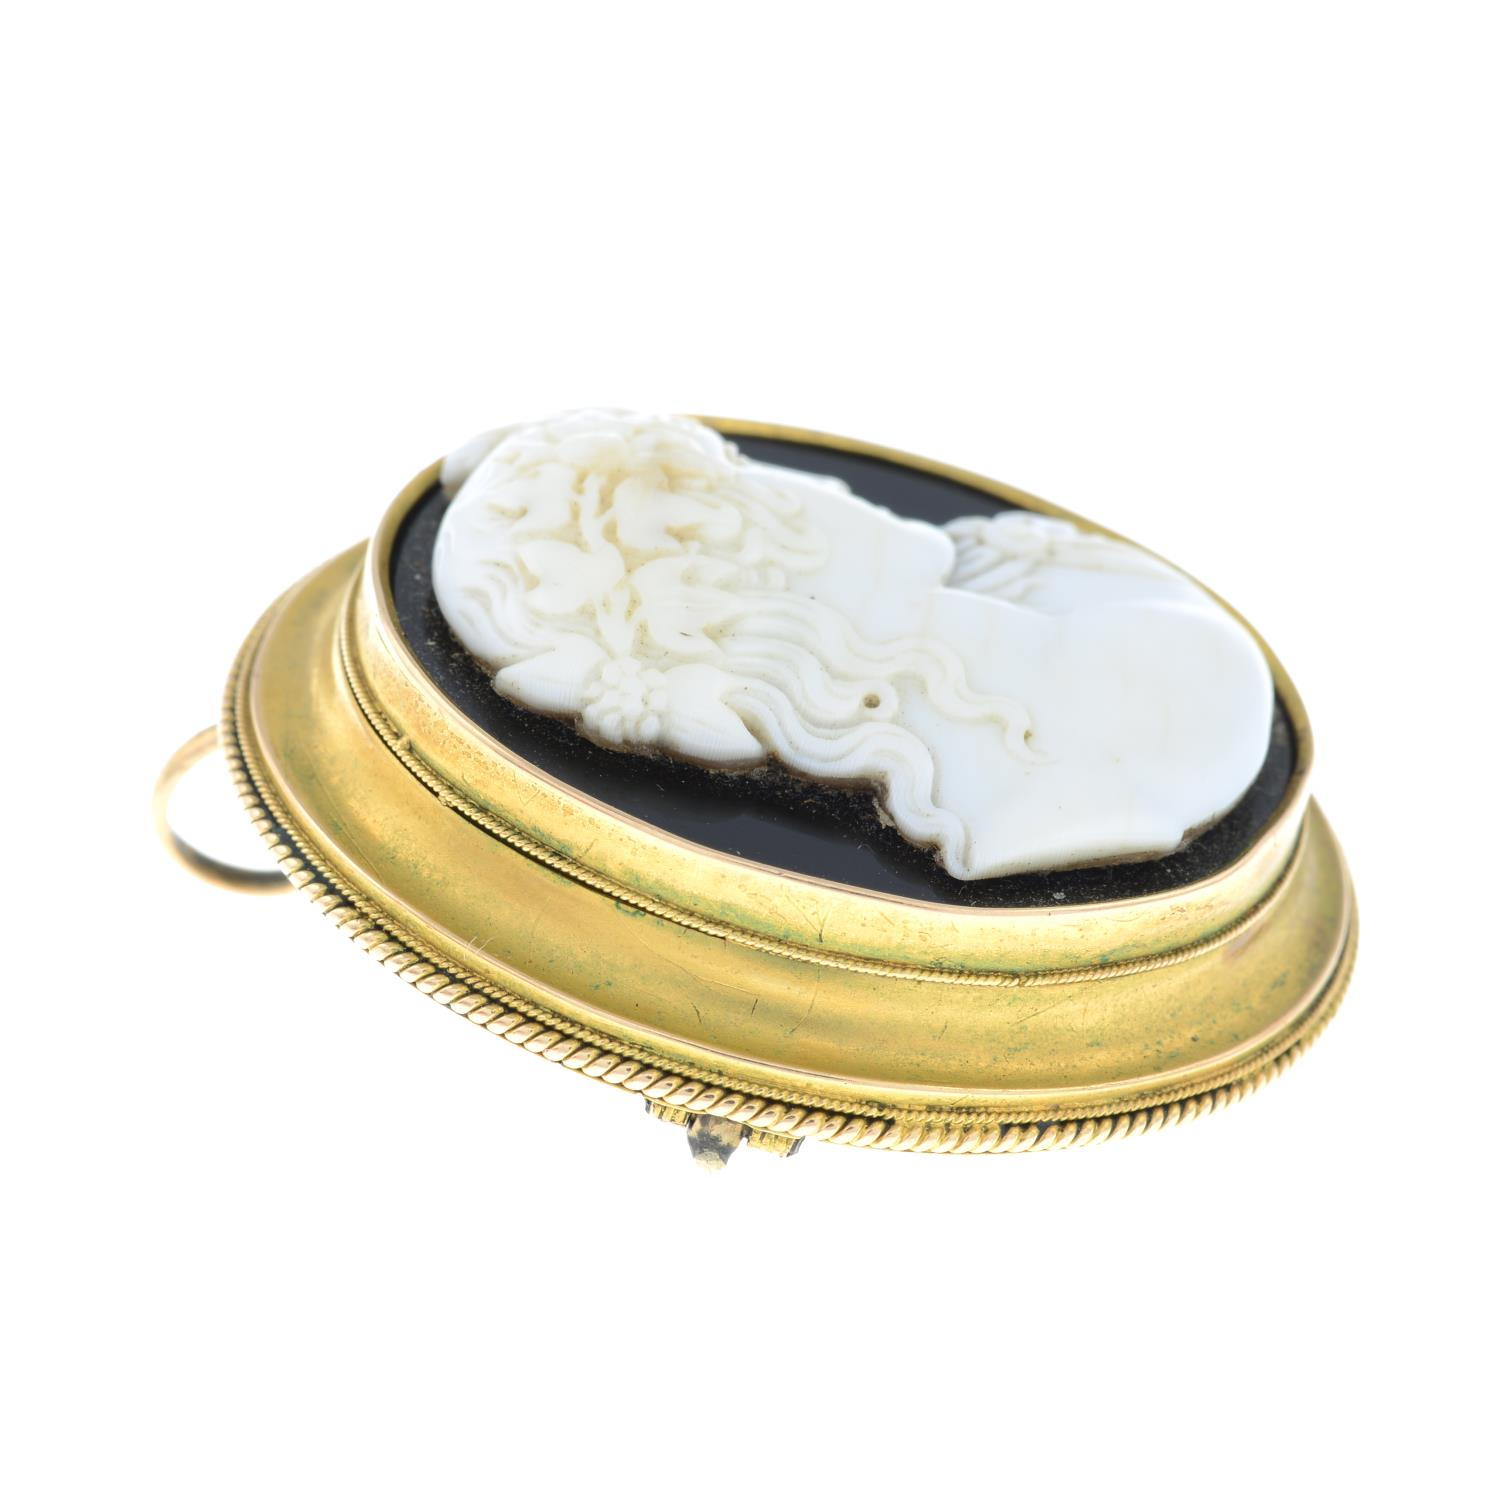 A late Victorian gold onyx and shell cameo brooch, depicting Bacchus. - Image 5 of 5